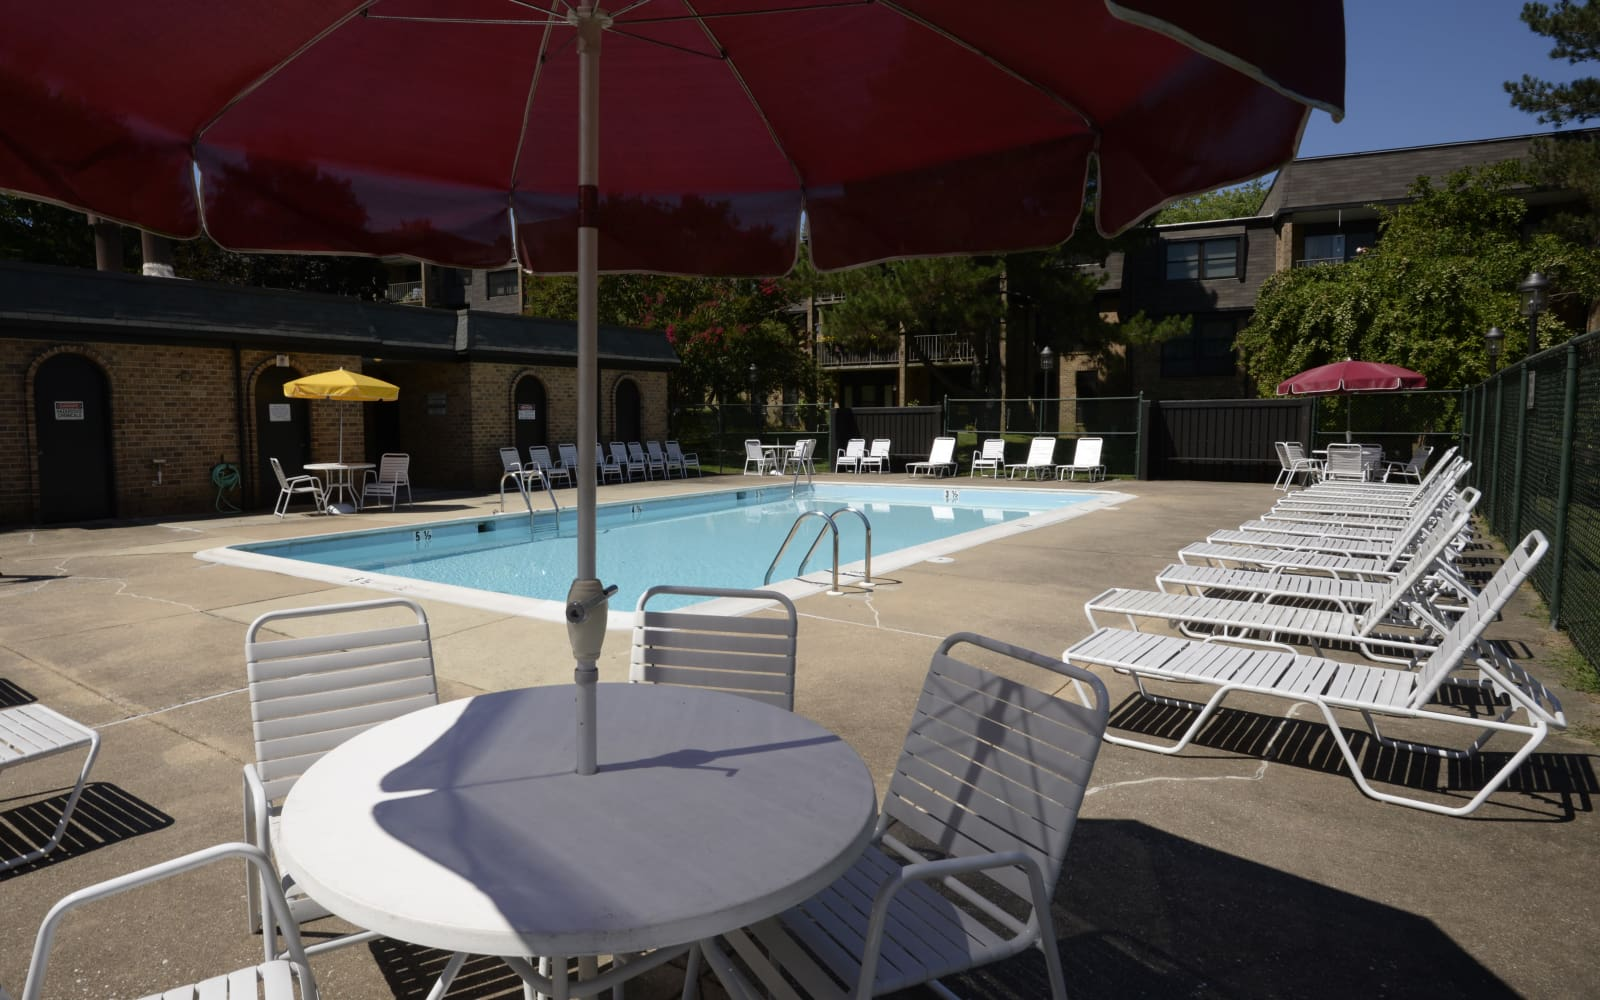 Pool area at Charlesgate Apartments in Towson, Maryland